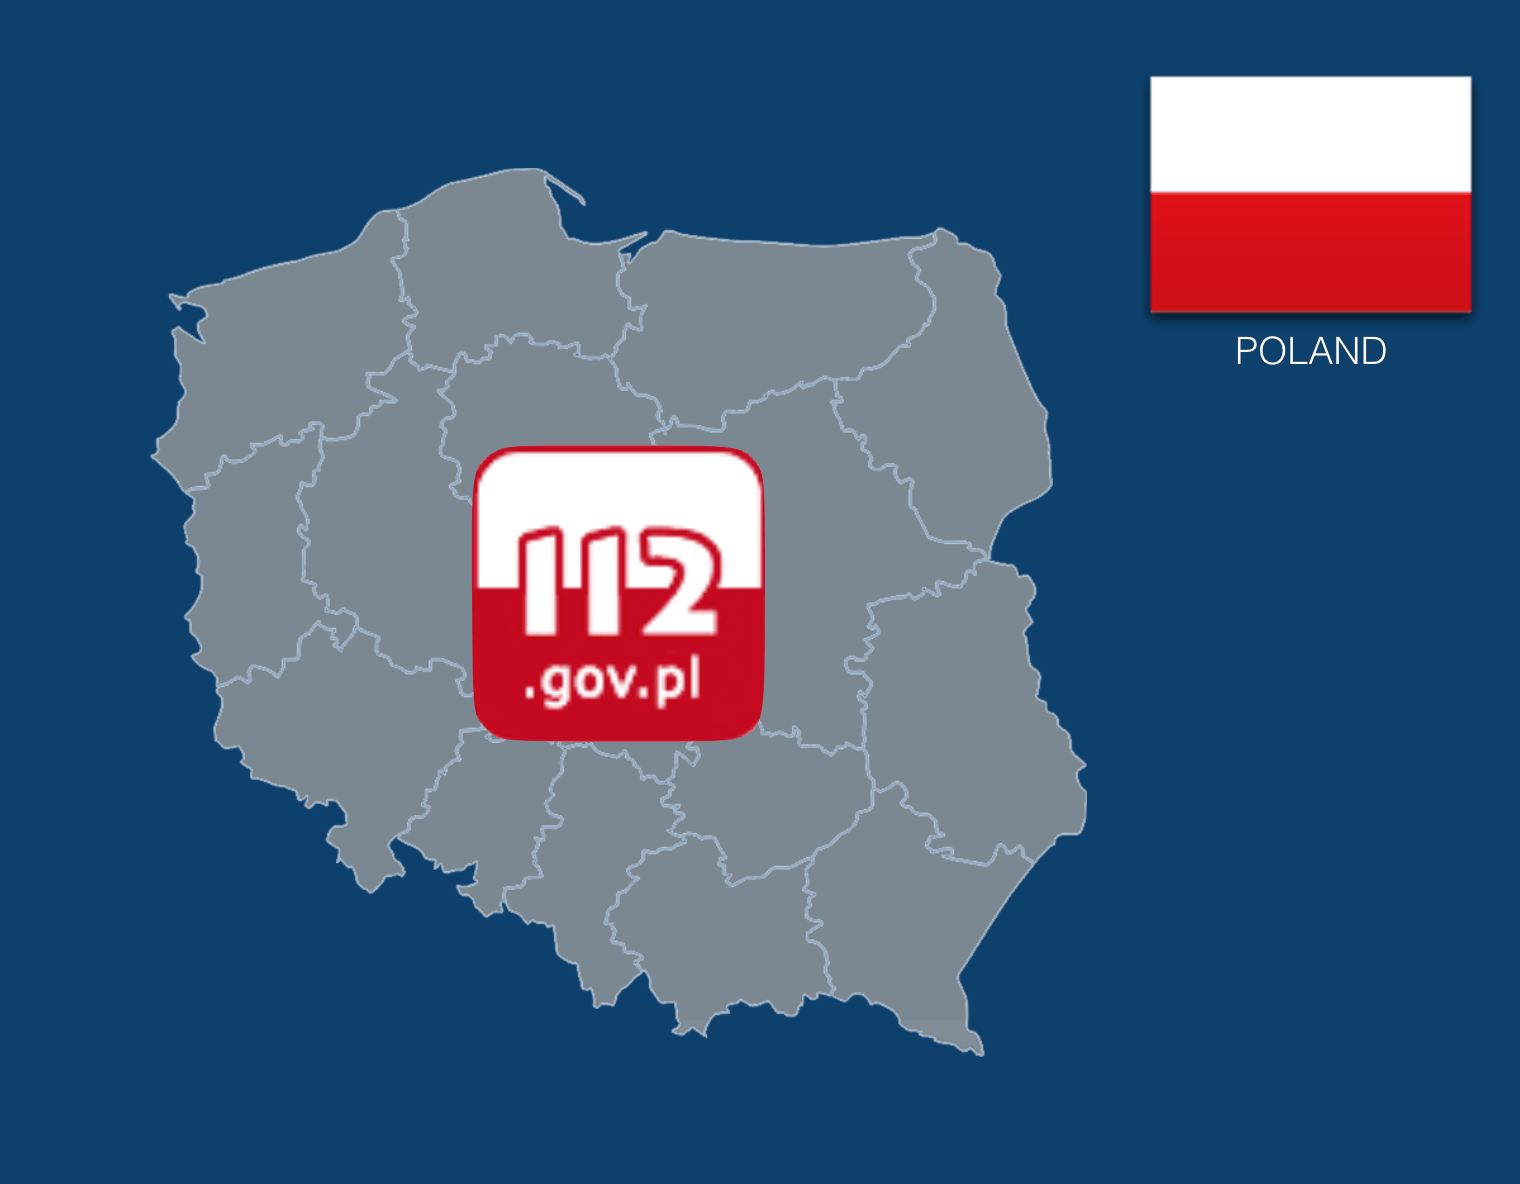 Dial 112 to Call an Ambulance in Poland